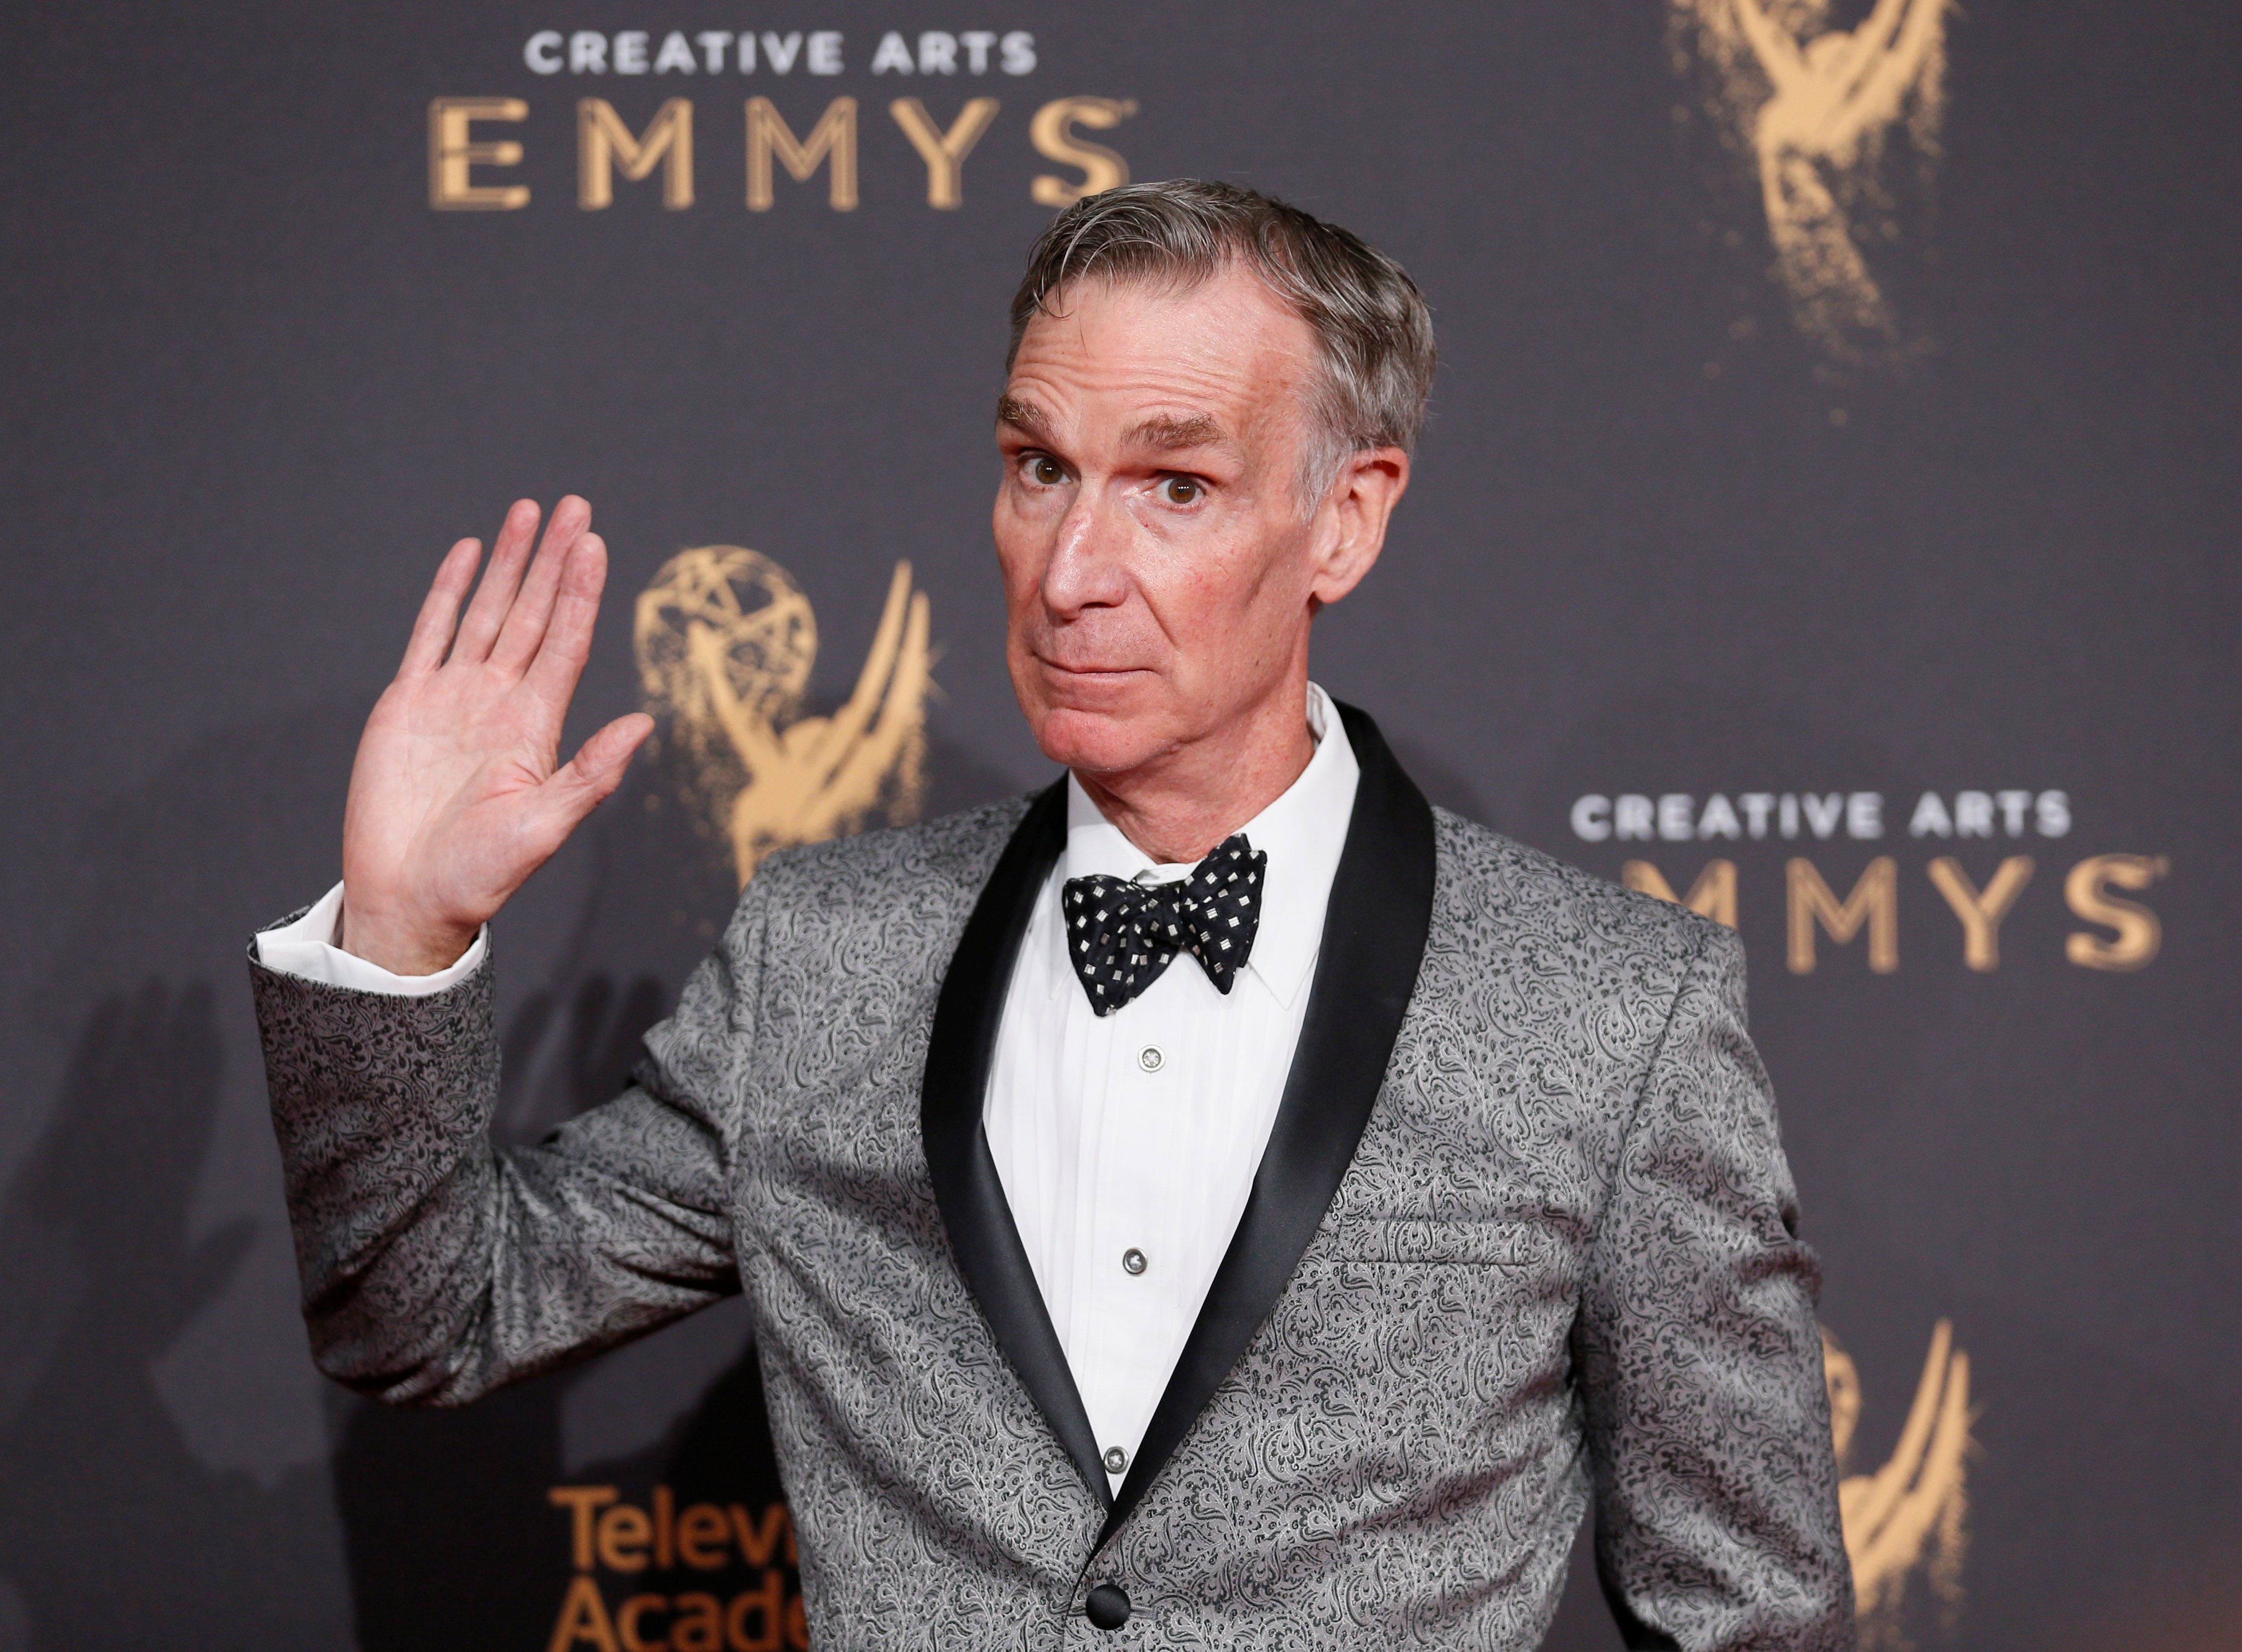 Television personality Bill Nye poses at the 2017 Creative Arts Emmy Awards in Los Angeles, California